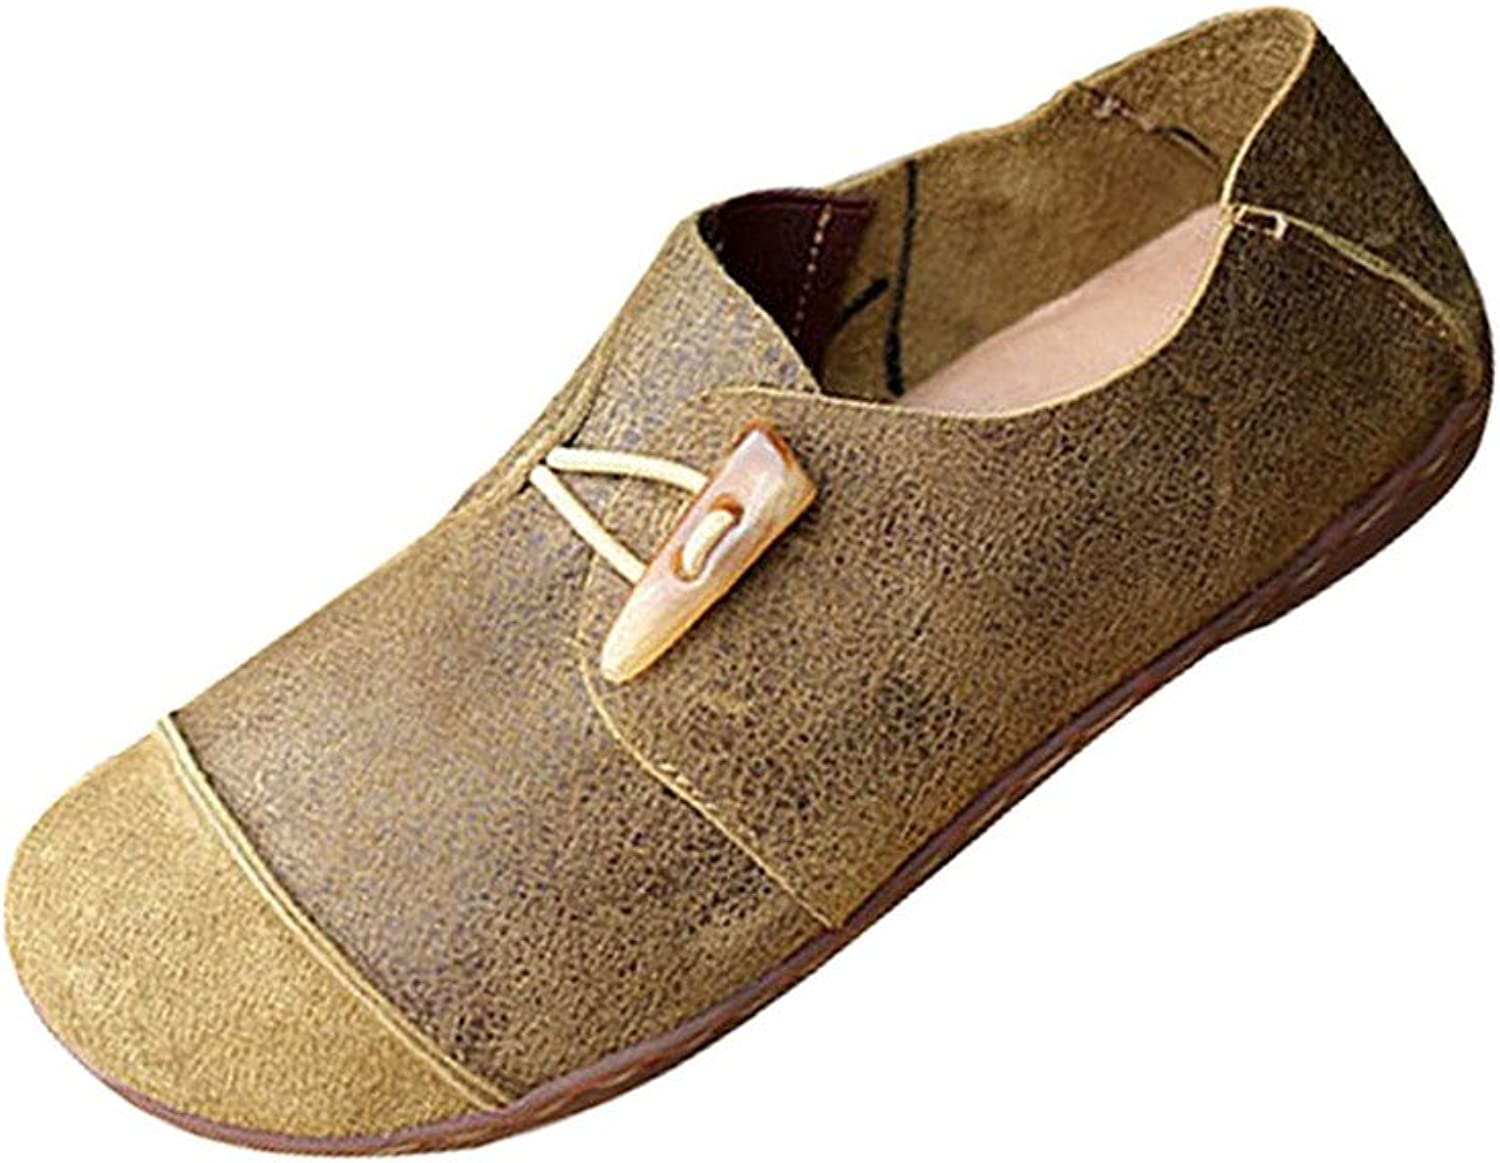 Yolee Women's Horn Button Leather Flats shoes